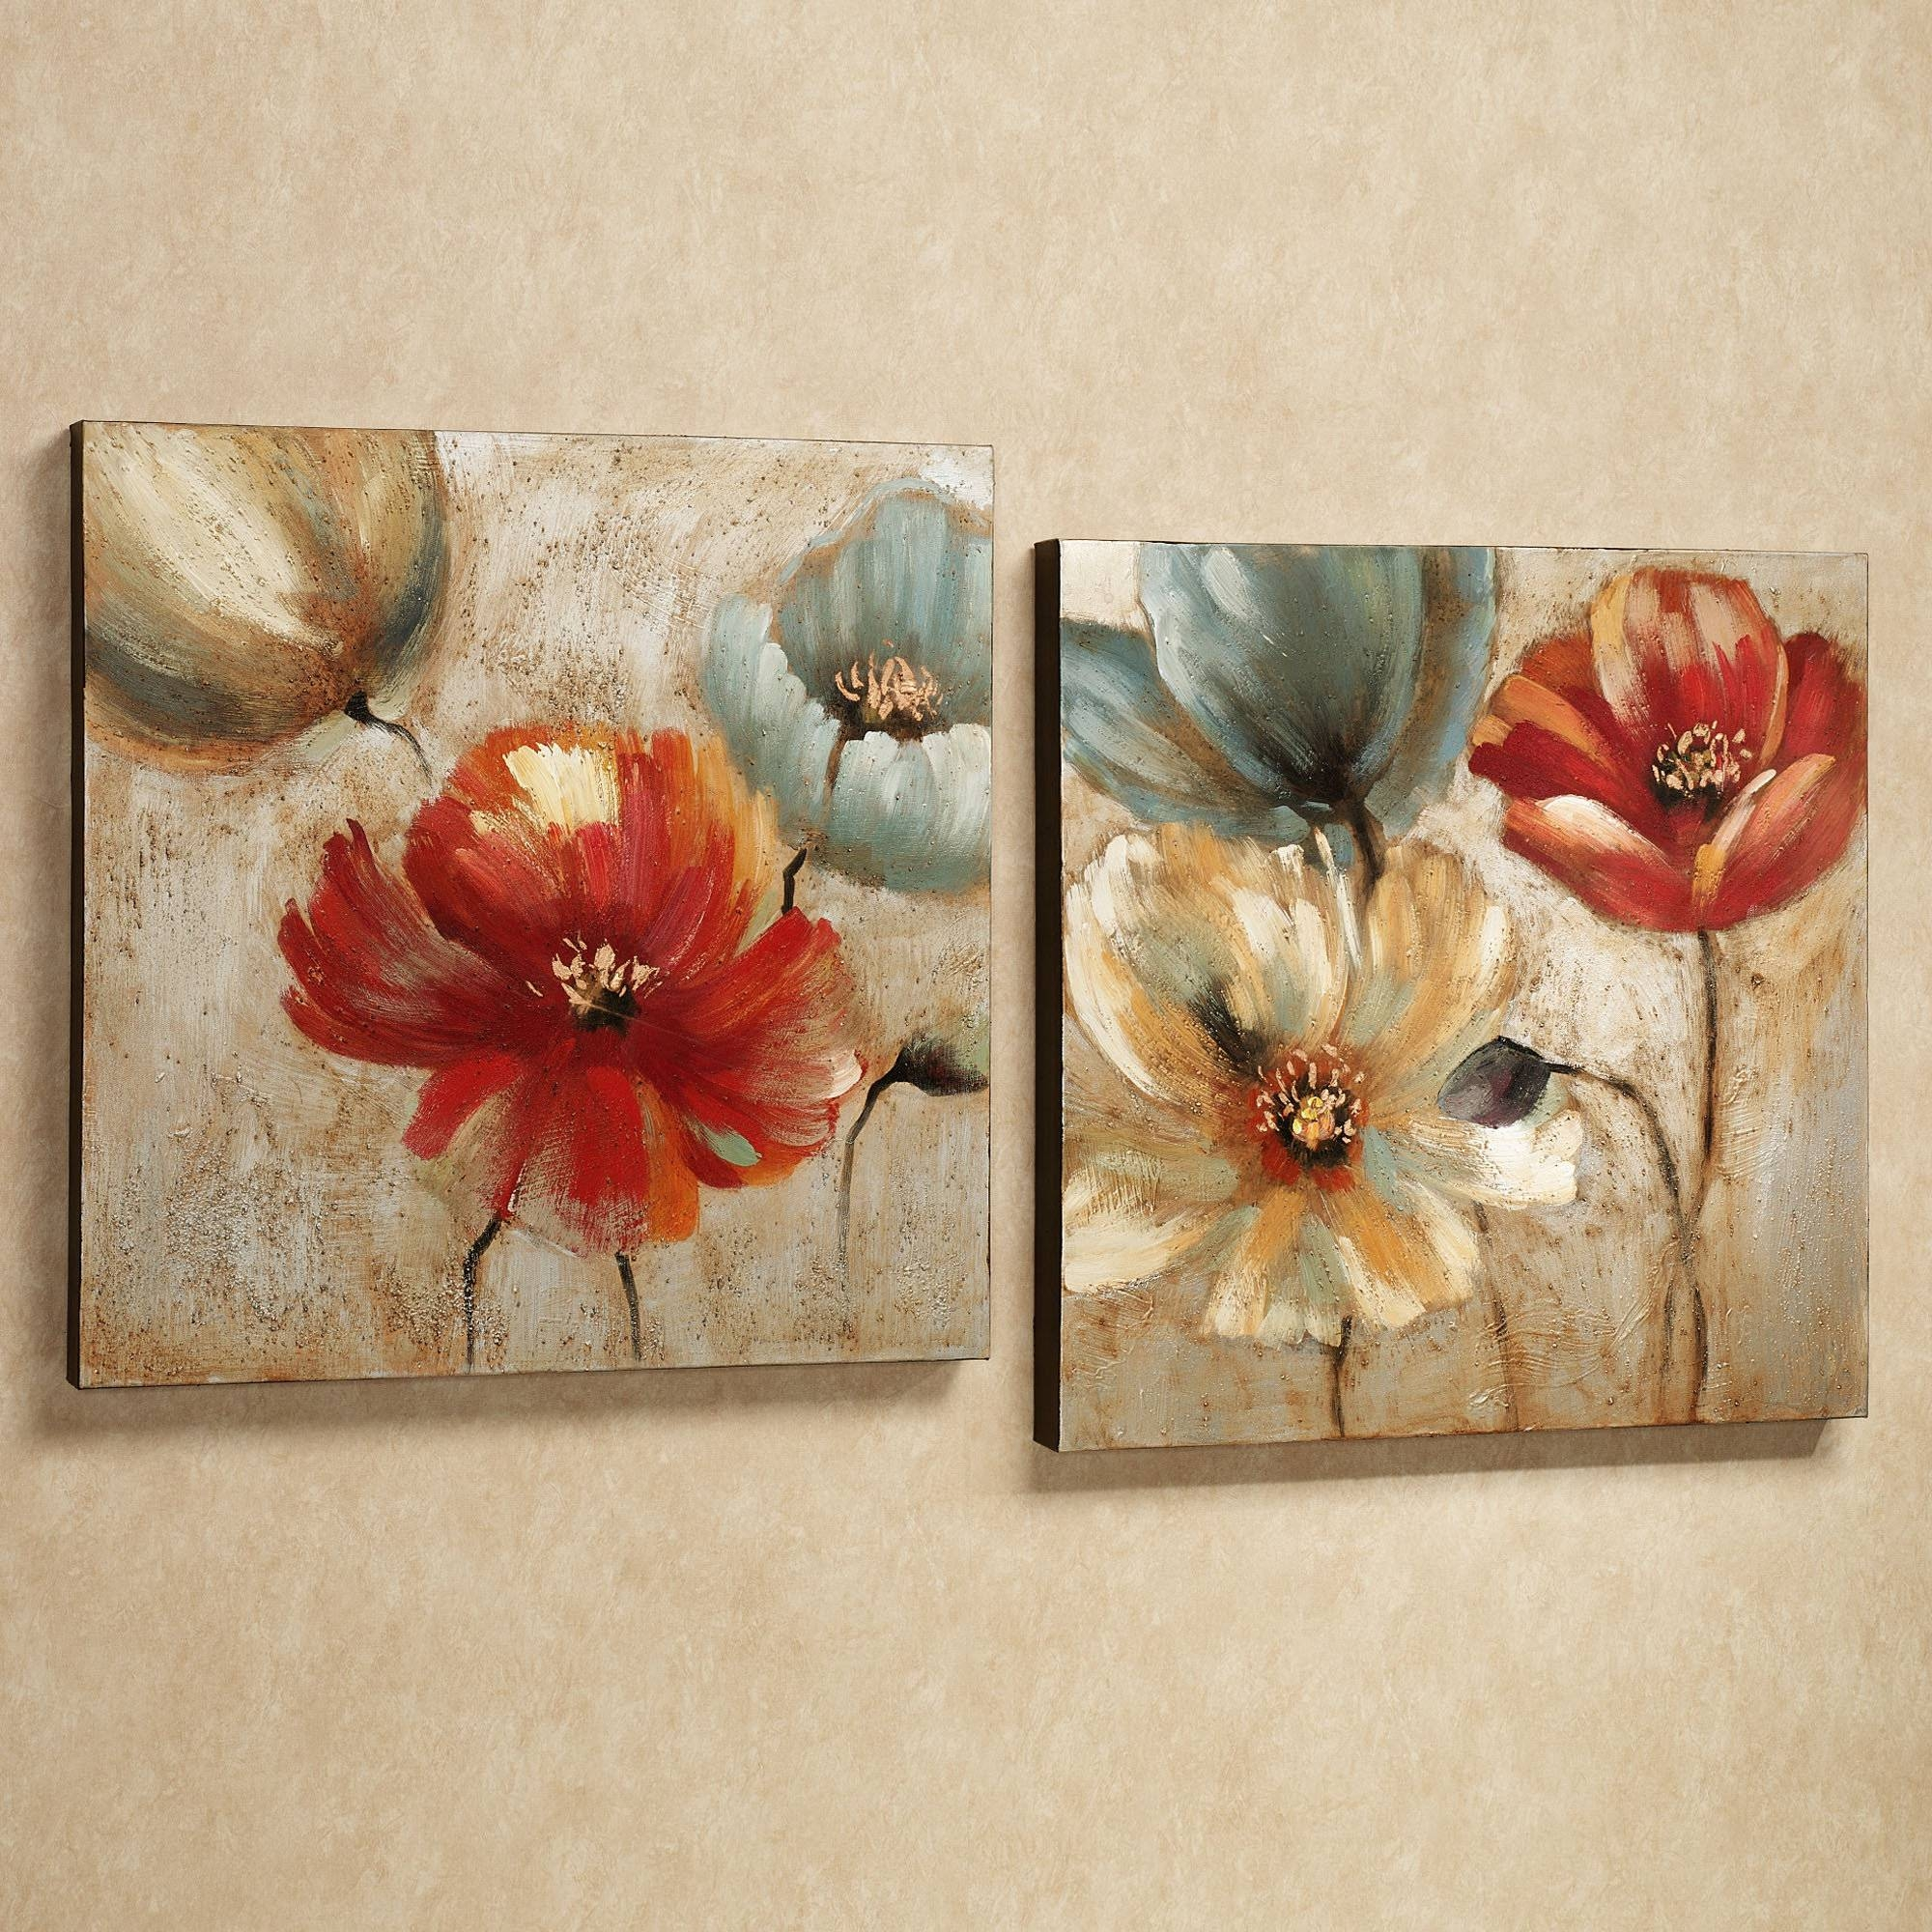 Wall Art Designs: Canvas Floral Wall Art Flowers Paintings Large In Most Popular Large Canvas Wall Art Sets (View 8 of 15)